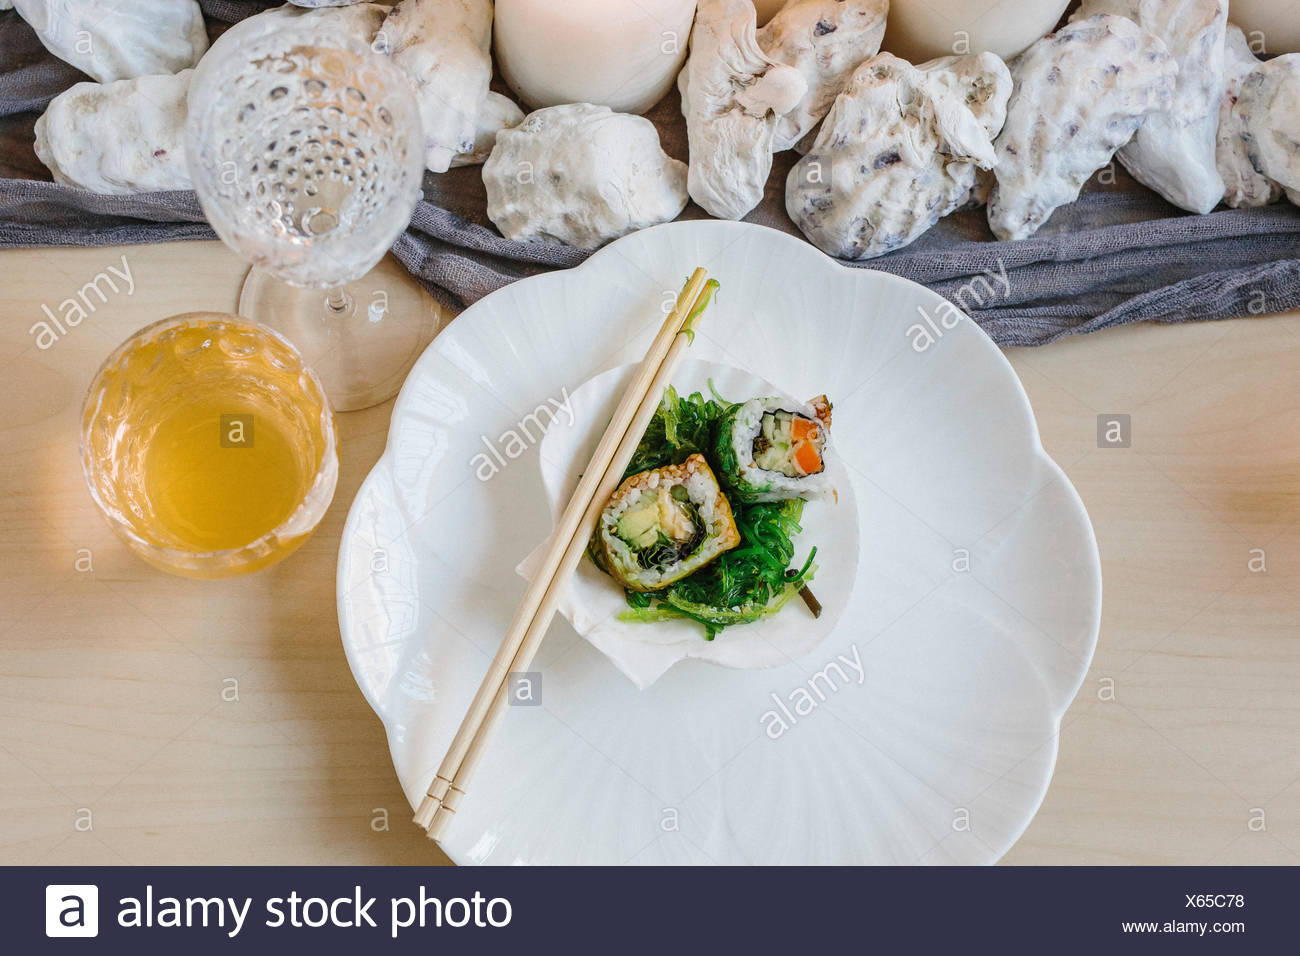 Overhead view of plates of sushi and a table setting for a celebration meal. - Stock Image